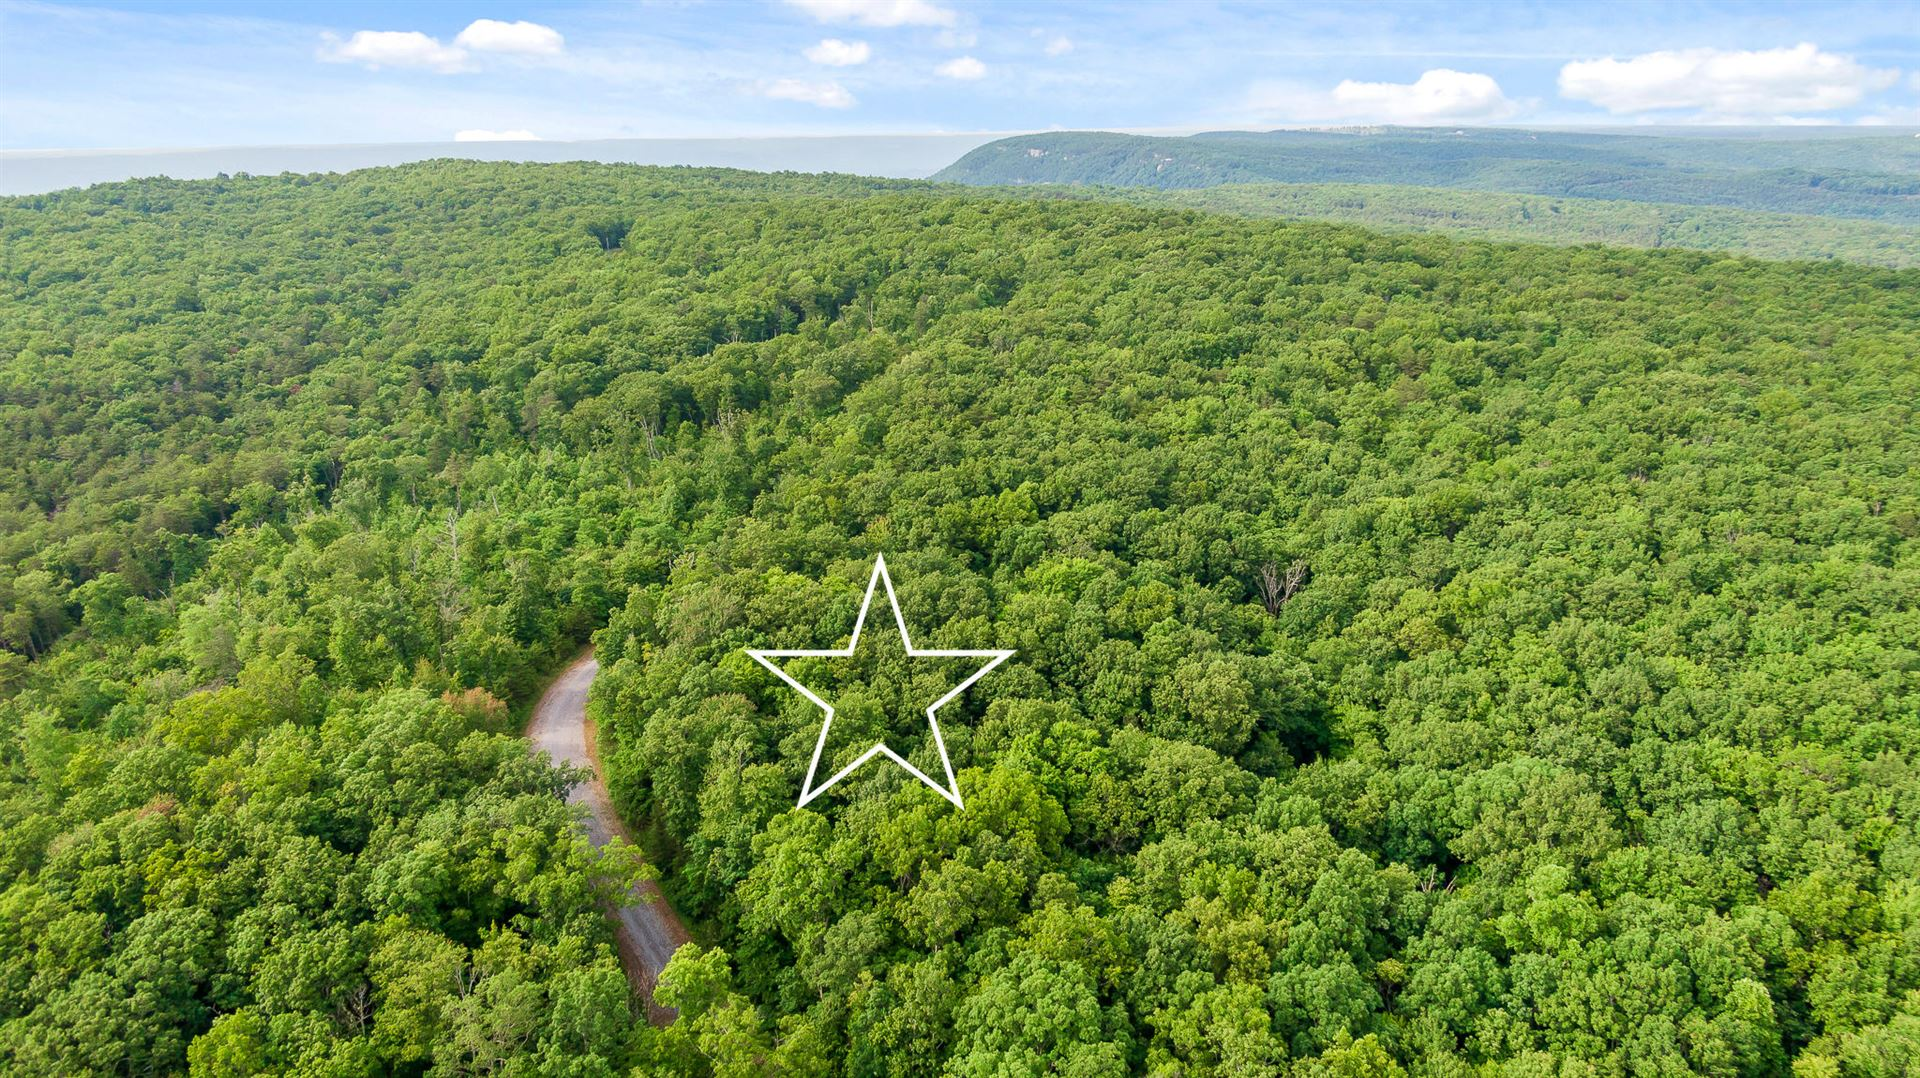 Photo for 0 Forest Knoll Rd, Dunlap, TN 37327 (MLS # 1337734)